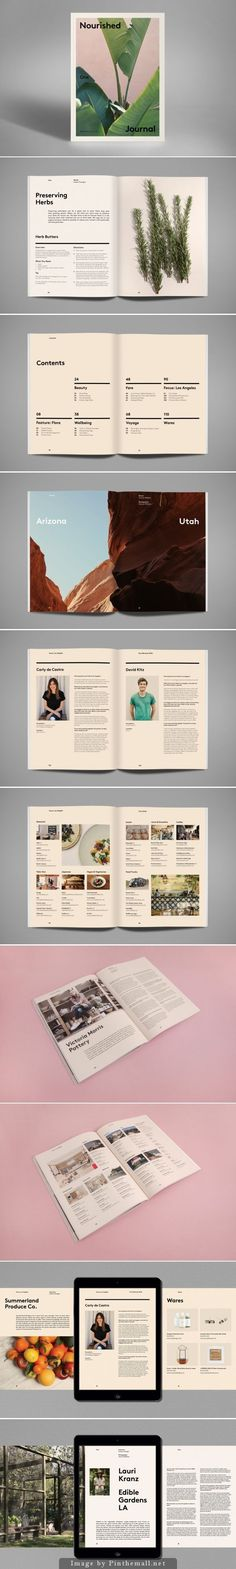 This is a journal in which uses the CRAP principles throughout the layout including the contrast between the title type and main body text. Repetiton can include the use of a header on top of every page, the black rule on top of pages containing type. The alignment of the text is mainly aligned to the left except for the front cover and photographic page spread. There's a good use of proximity and utilisation of white space making everything easily read.: